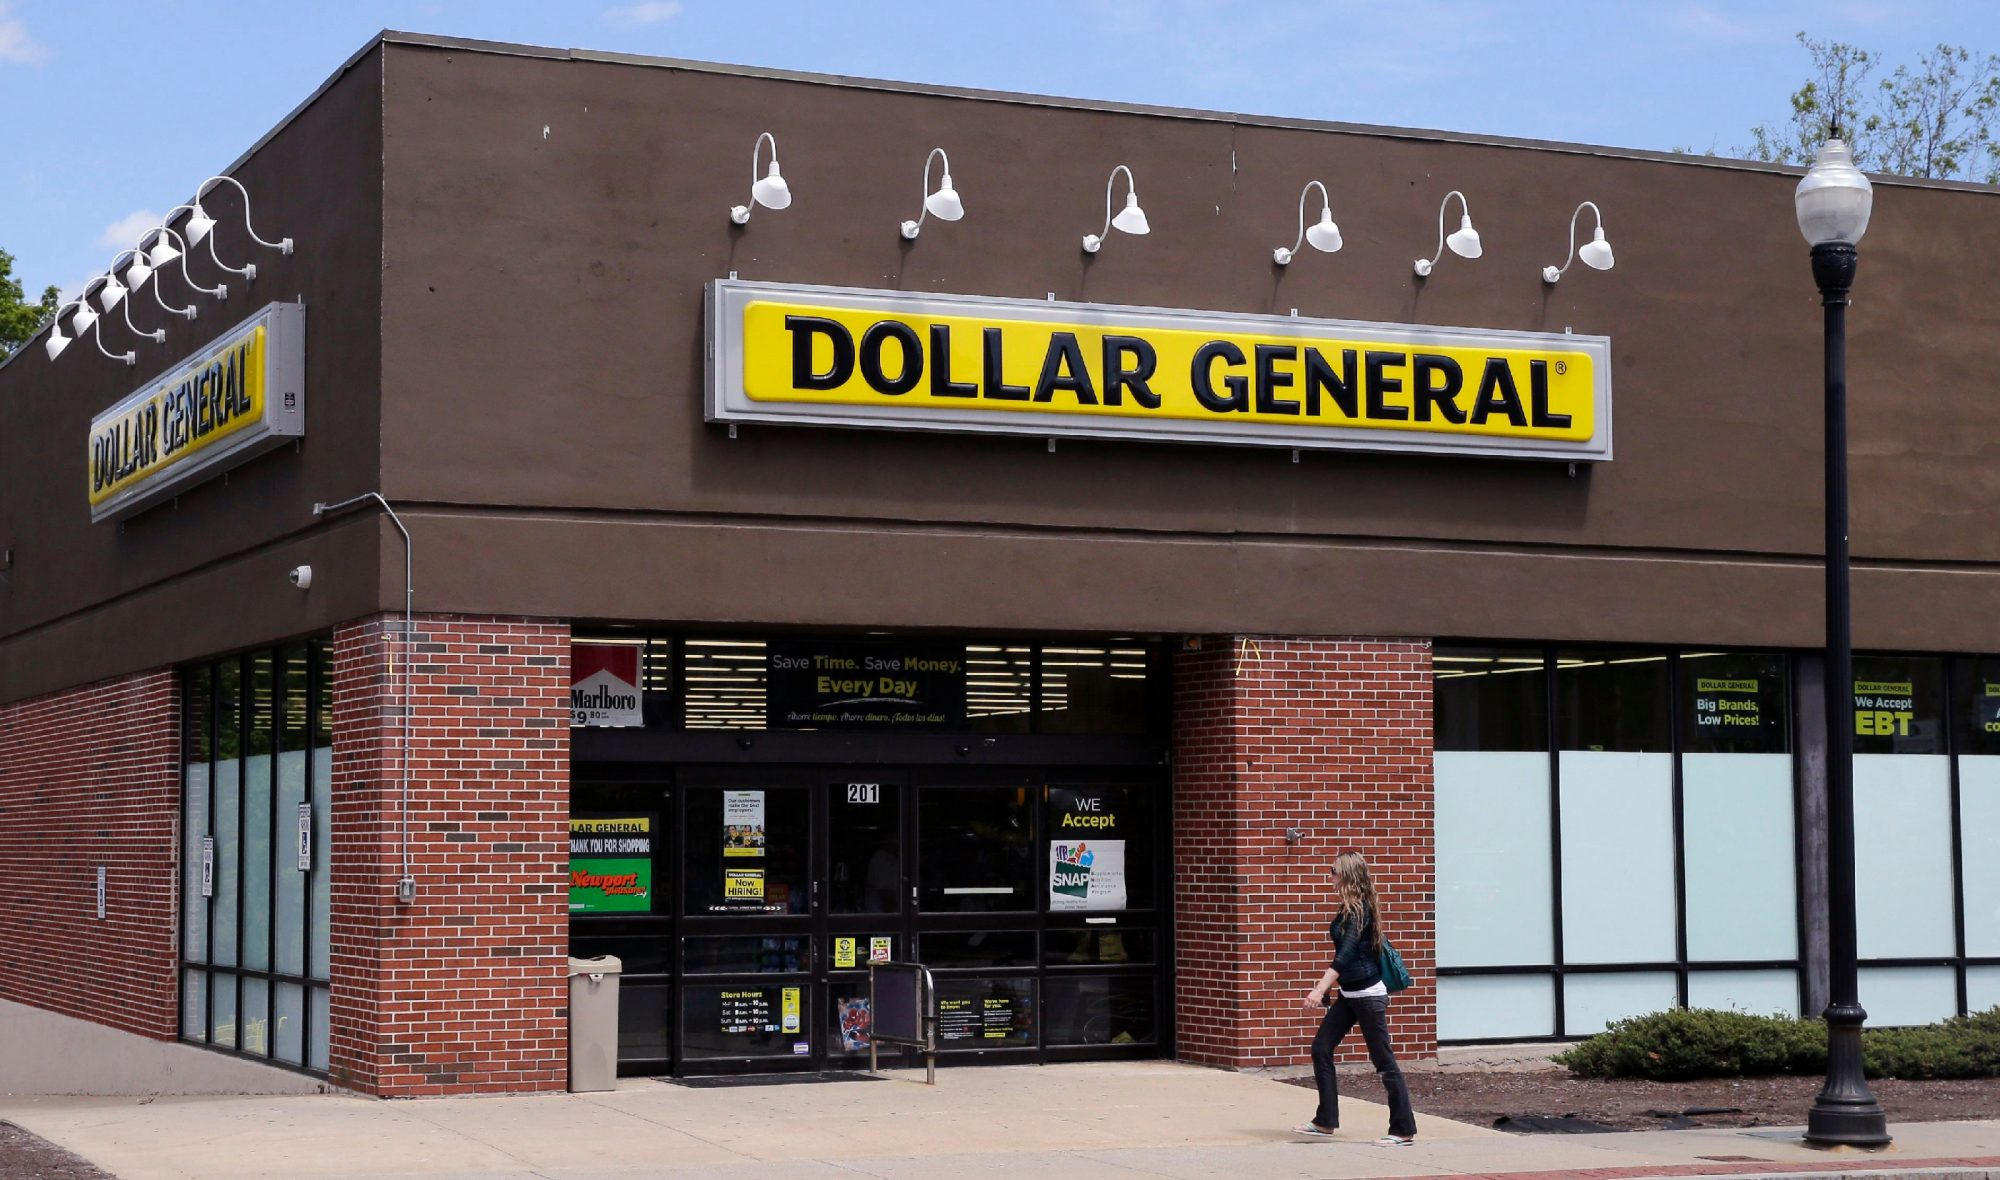 What to Buy (and What to Avoid) at Dollar Stores, According to Super Fans